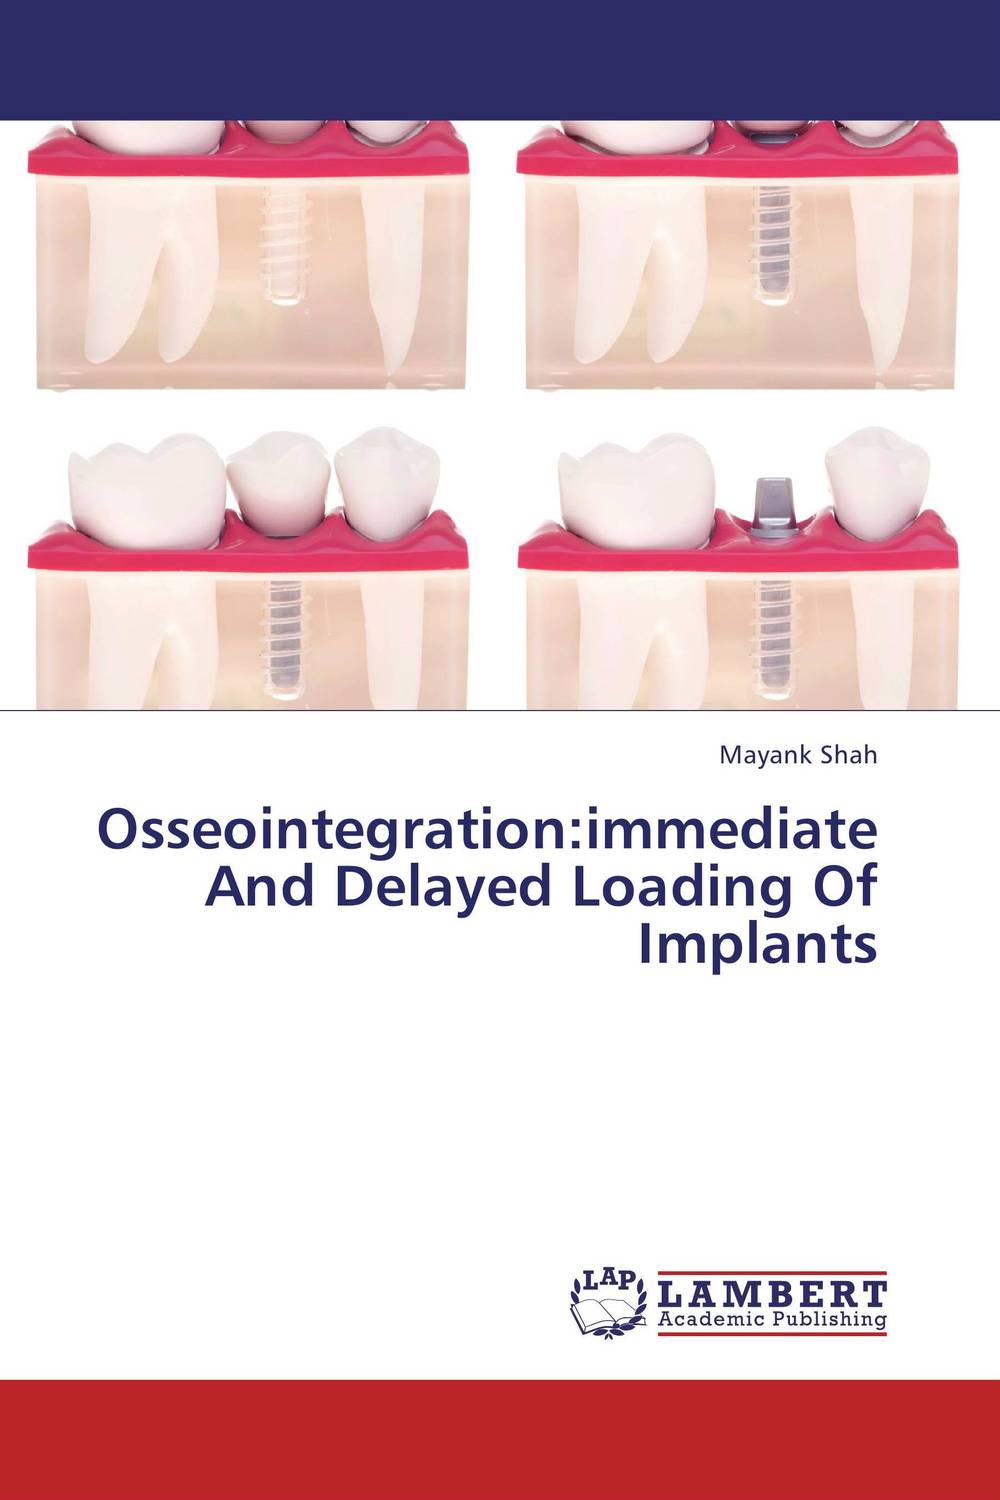 Osseointegration:immediate And Delayed Loading Of Implants shaveta kaushal and atamjit singh pal dental implants and its design